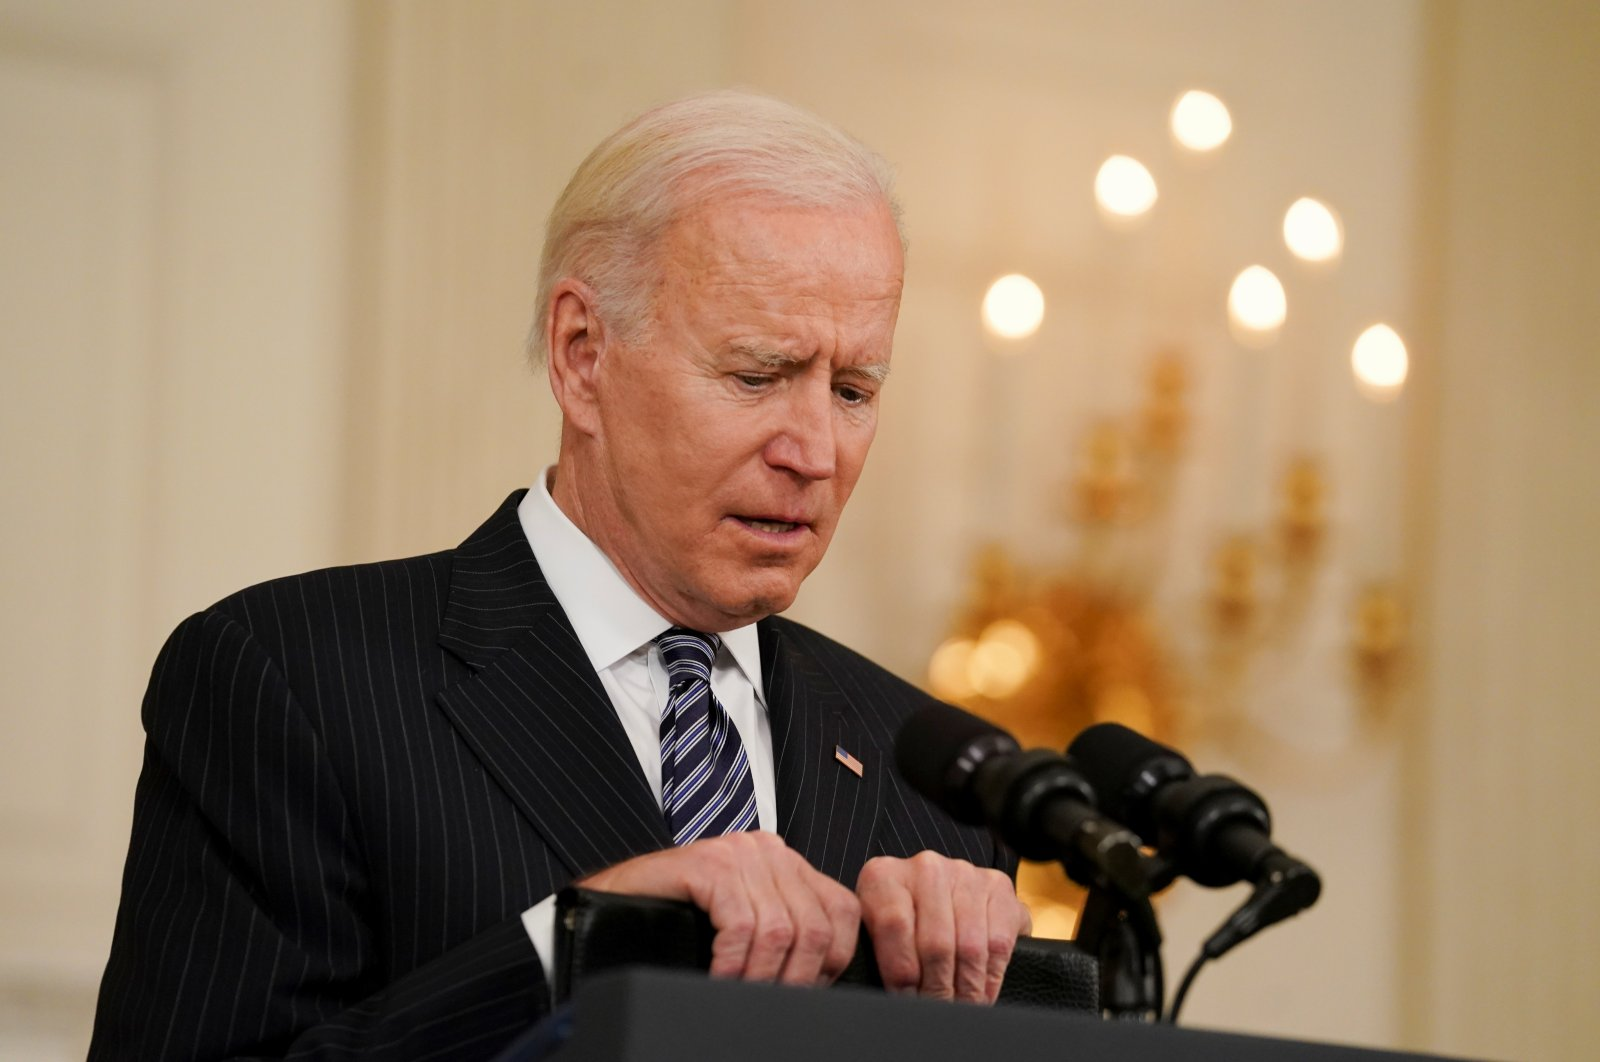 U.S. President Joe Biden delivers remarks on the state of the coronavirus disease (COVID-19) vaccinations from the State Dining Room at the White House in Washington, D.C., U.S., April 6, 2021. (Reuters Photo)